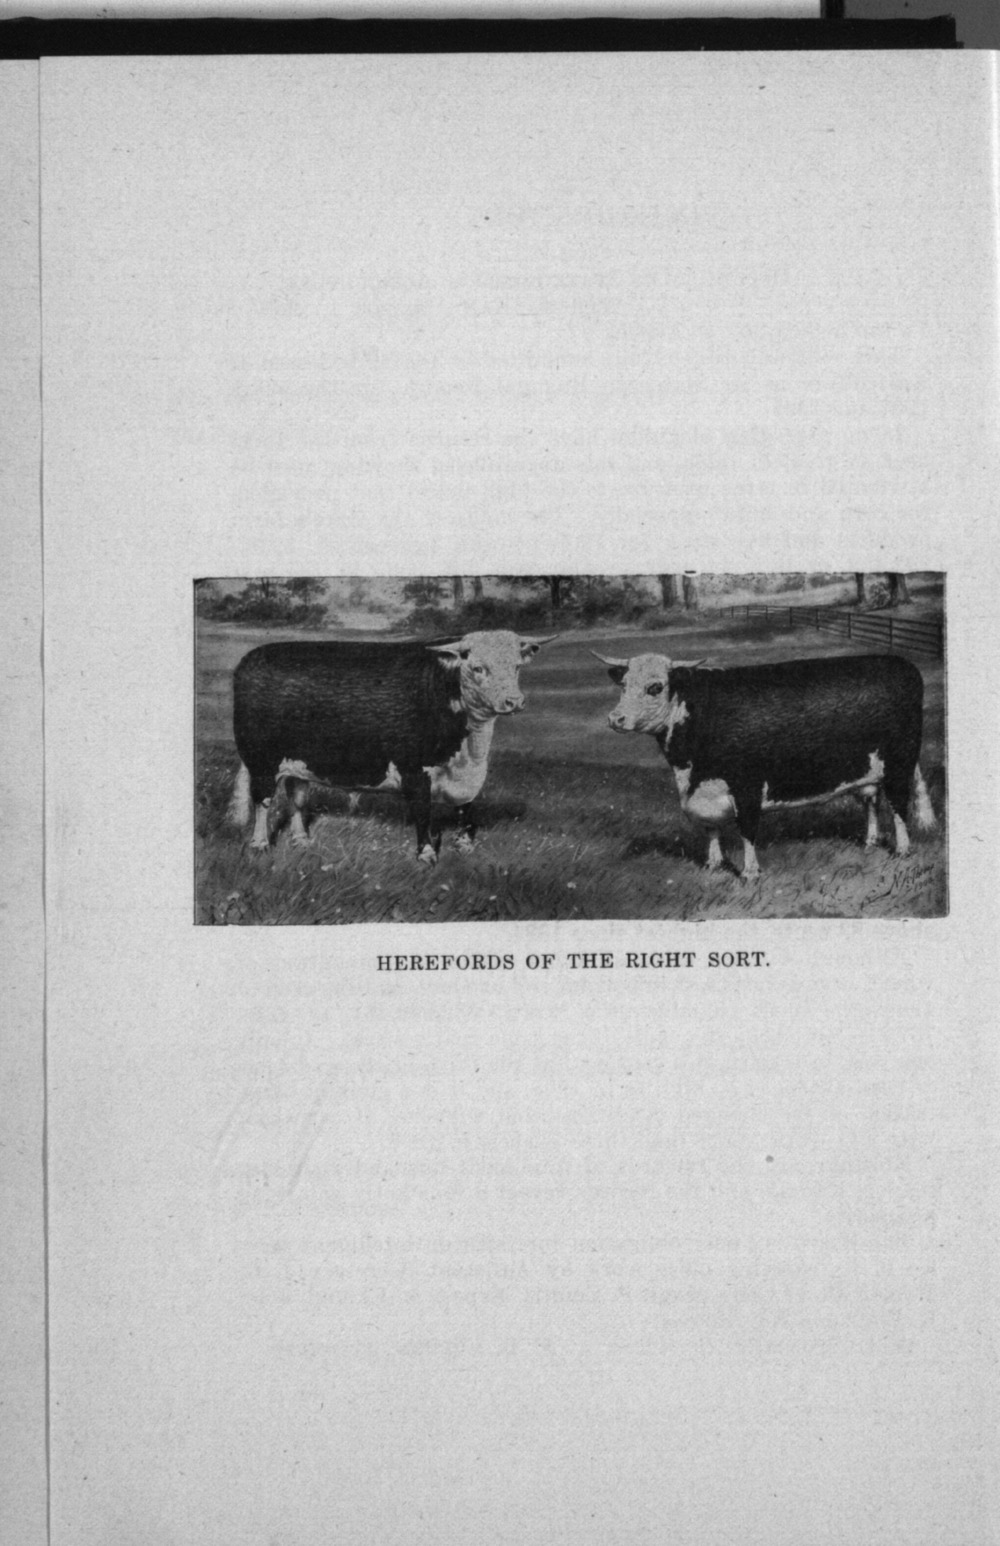 Sixteenth biennial report of the Kansas State Board of Agriculture, 1907-1908 - Illustration